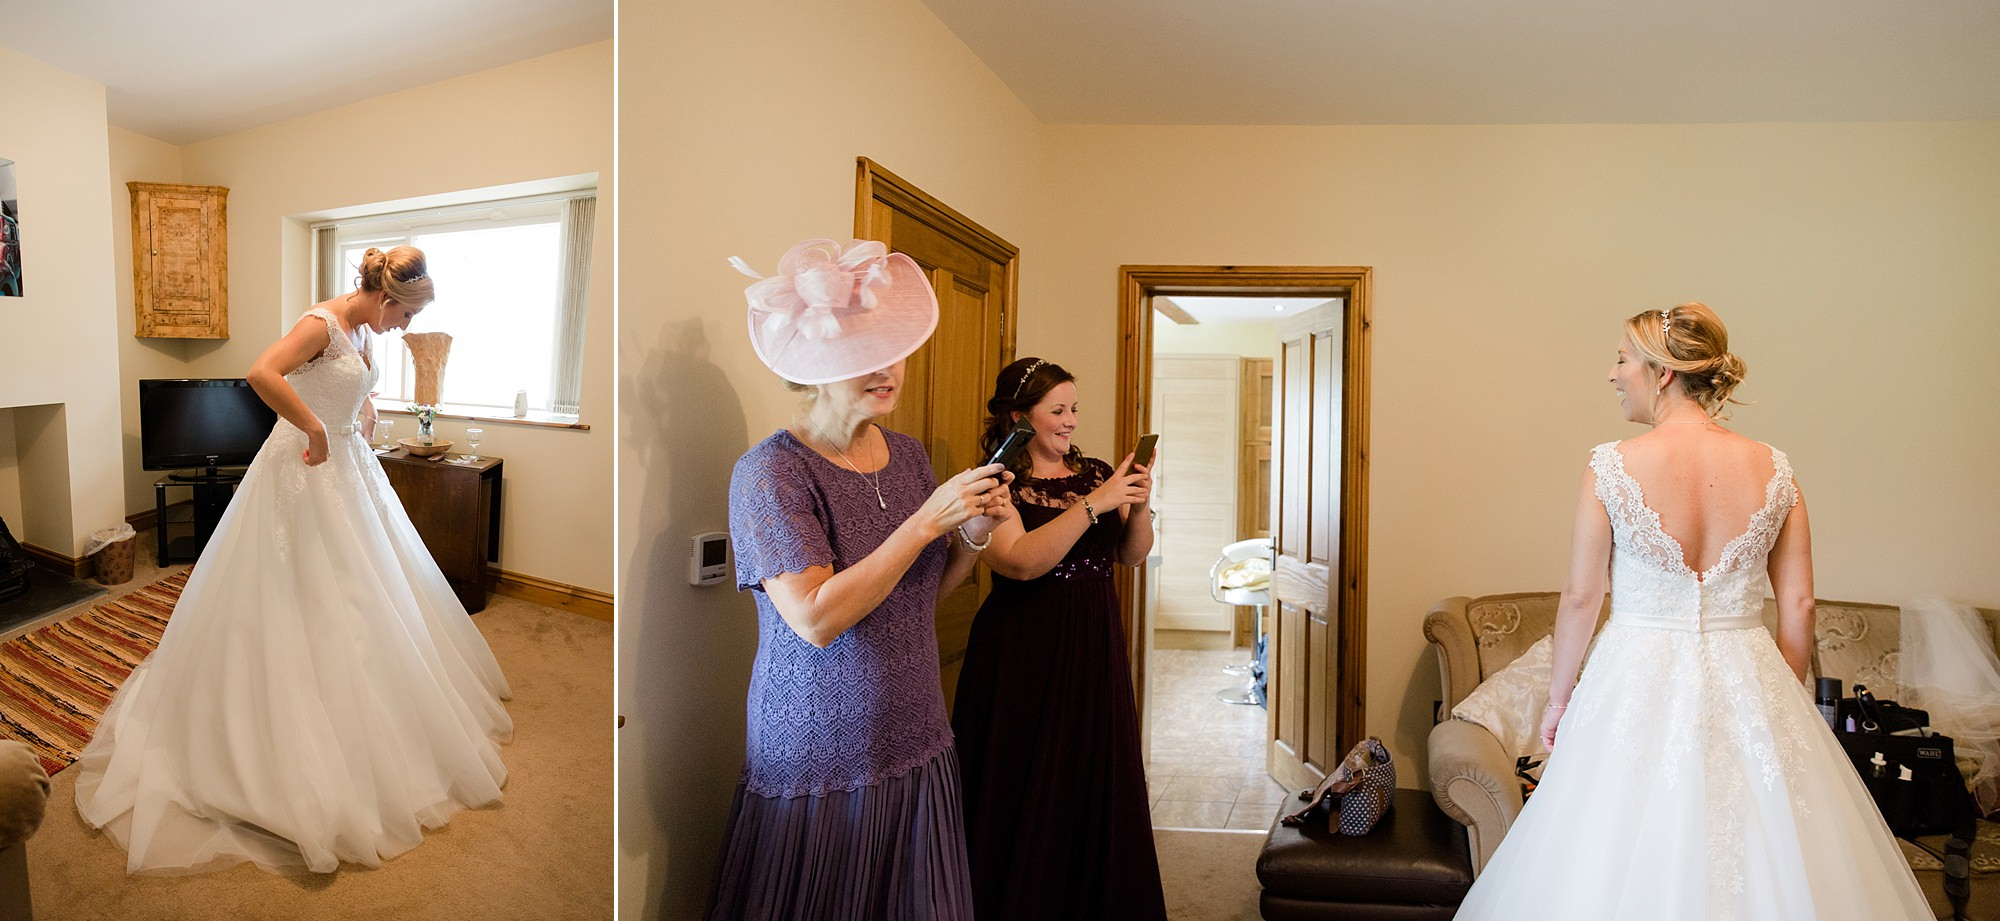 A fun wedding at Plas Isaf - bride and family get ready